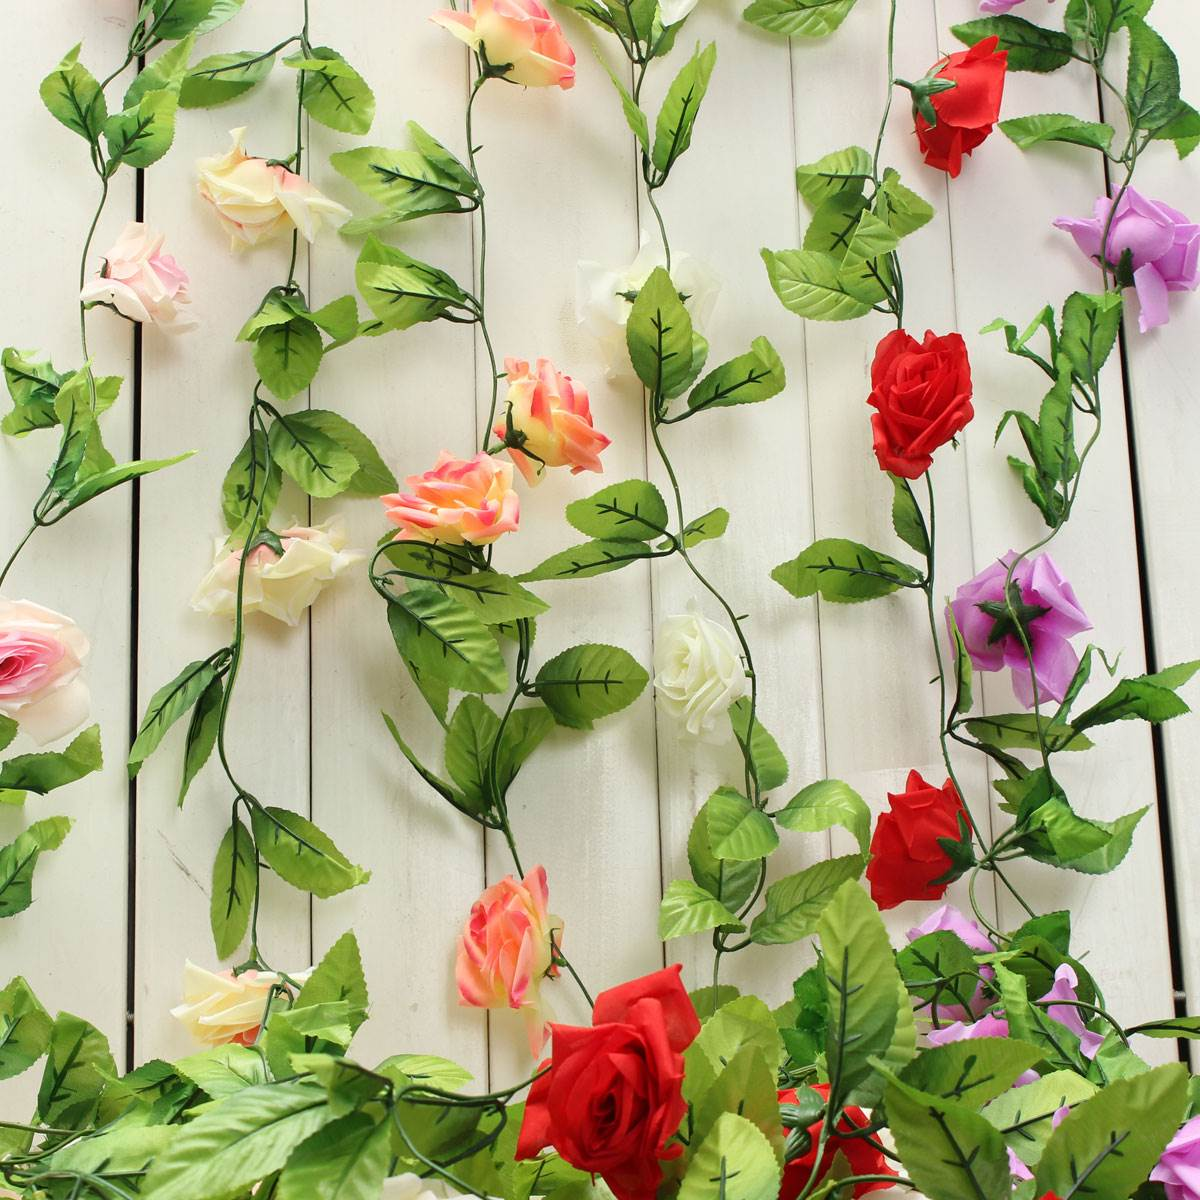 Plastic Silk Fabric Rose Flower 2.4m Ivy Vine Hanging Garland Wedding Home  Decor Festive Party Supplies Spot Arrangement